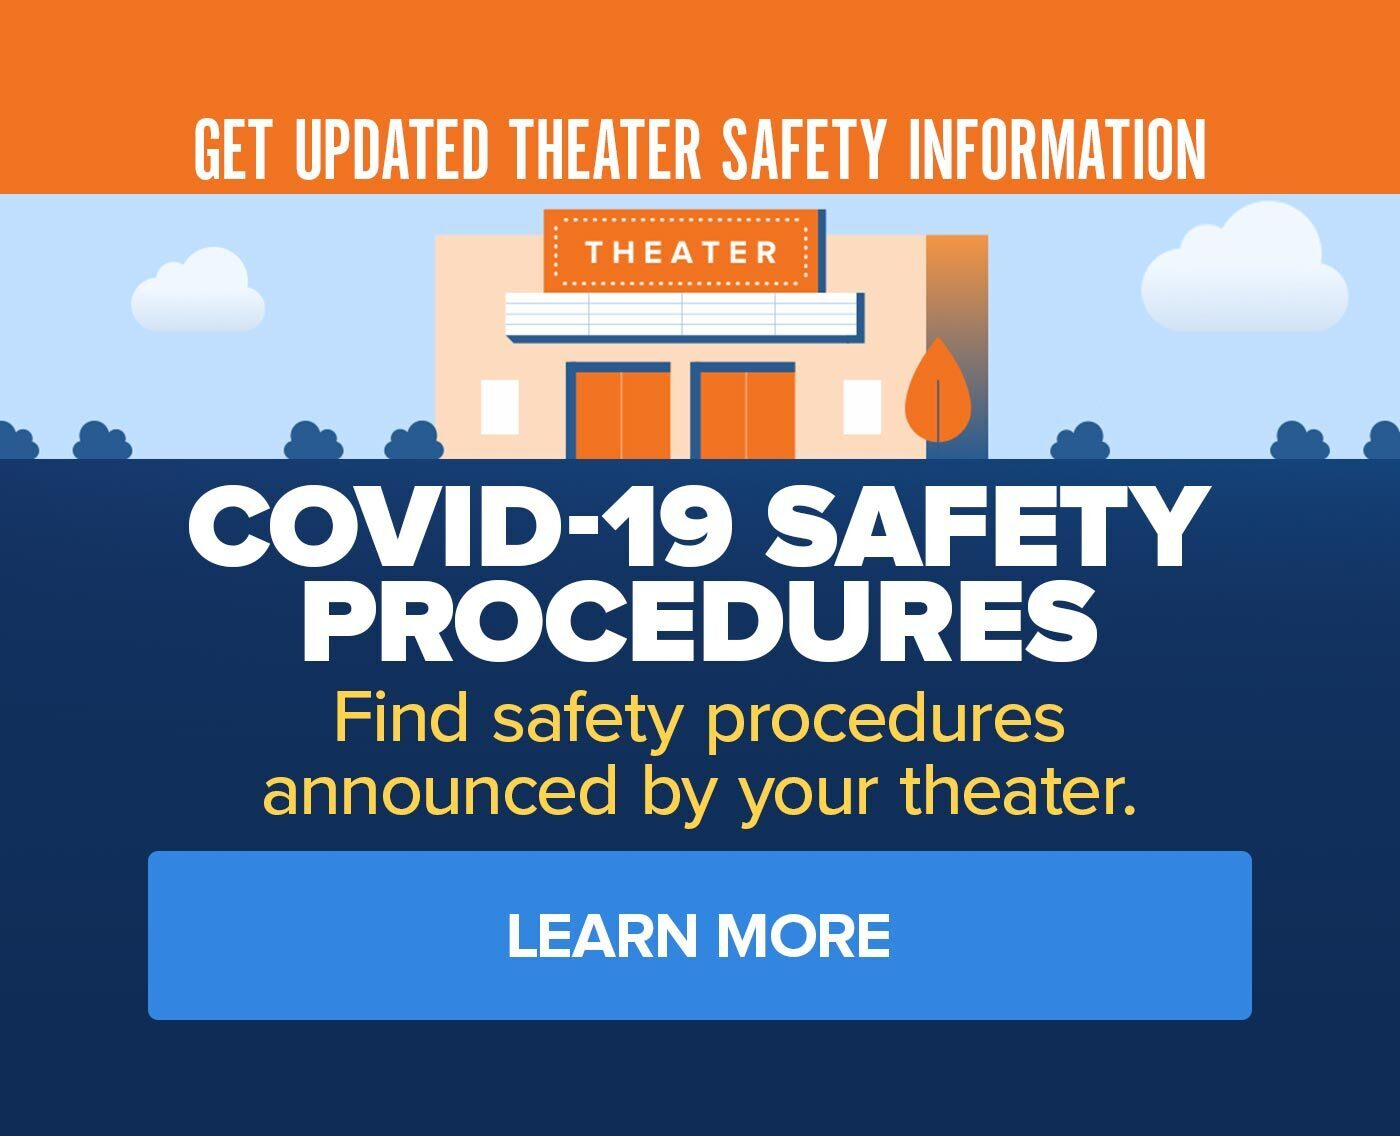 1400 x 1136_Going back to movie theaters! - COVID-19 Safety procedures announced by your theater